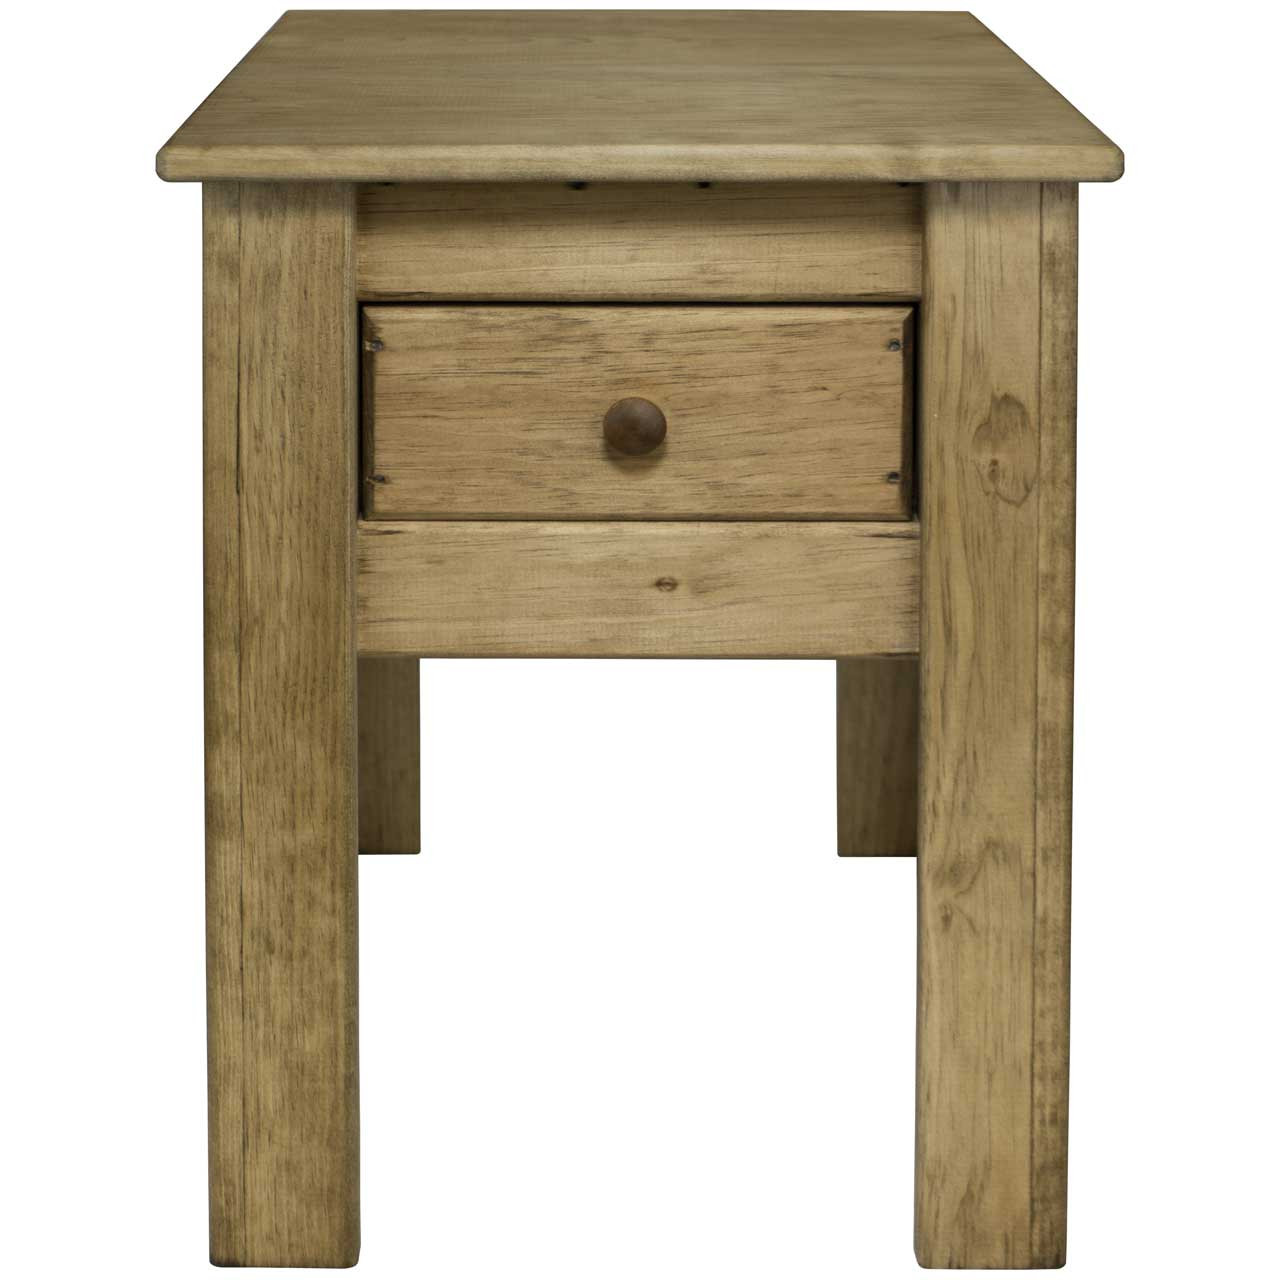 Shaker Wood Side Table | 24 inch High End Table - dnlwoodworks.com